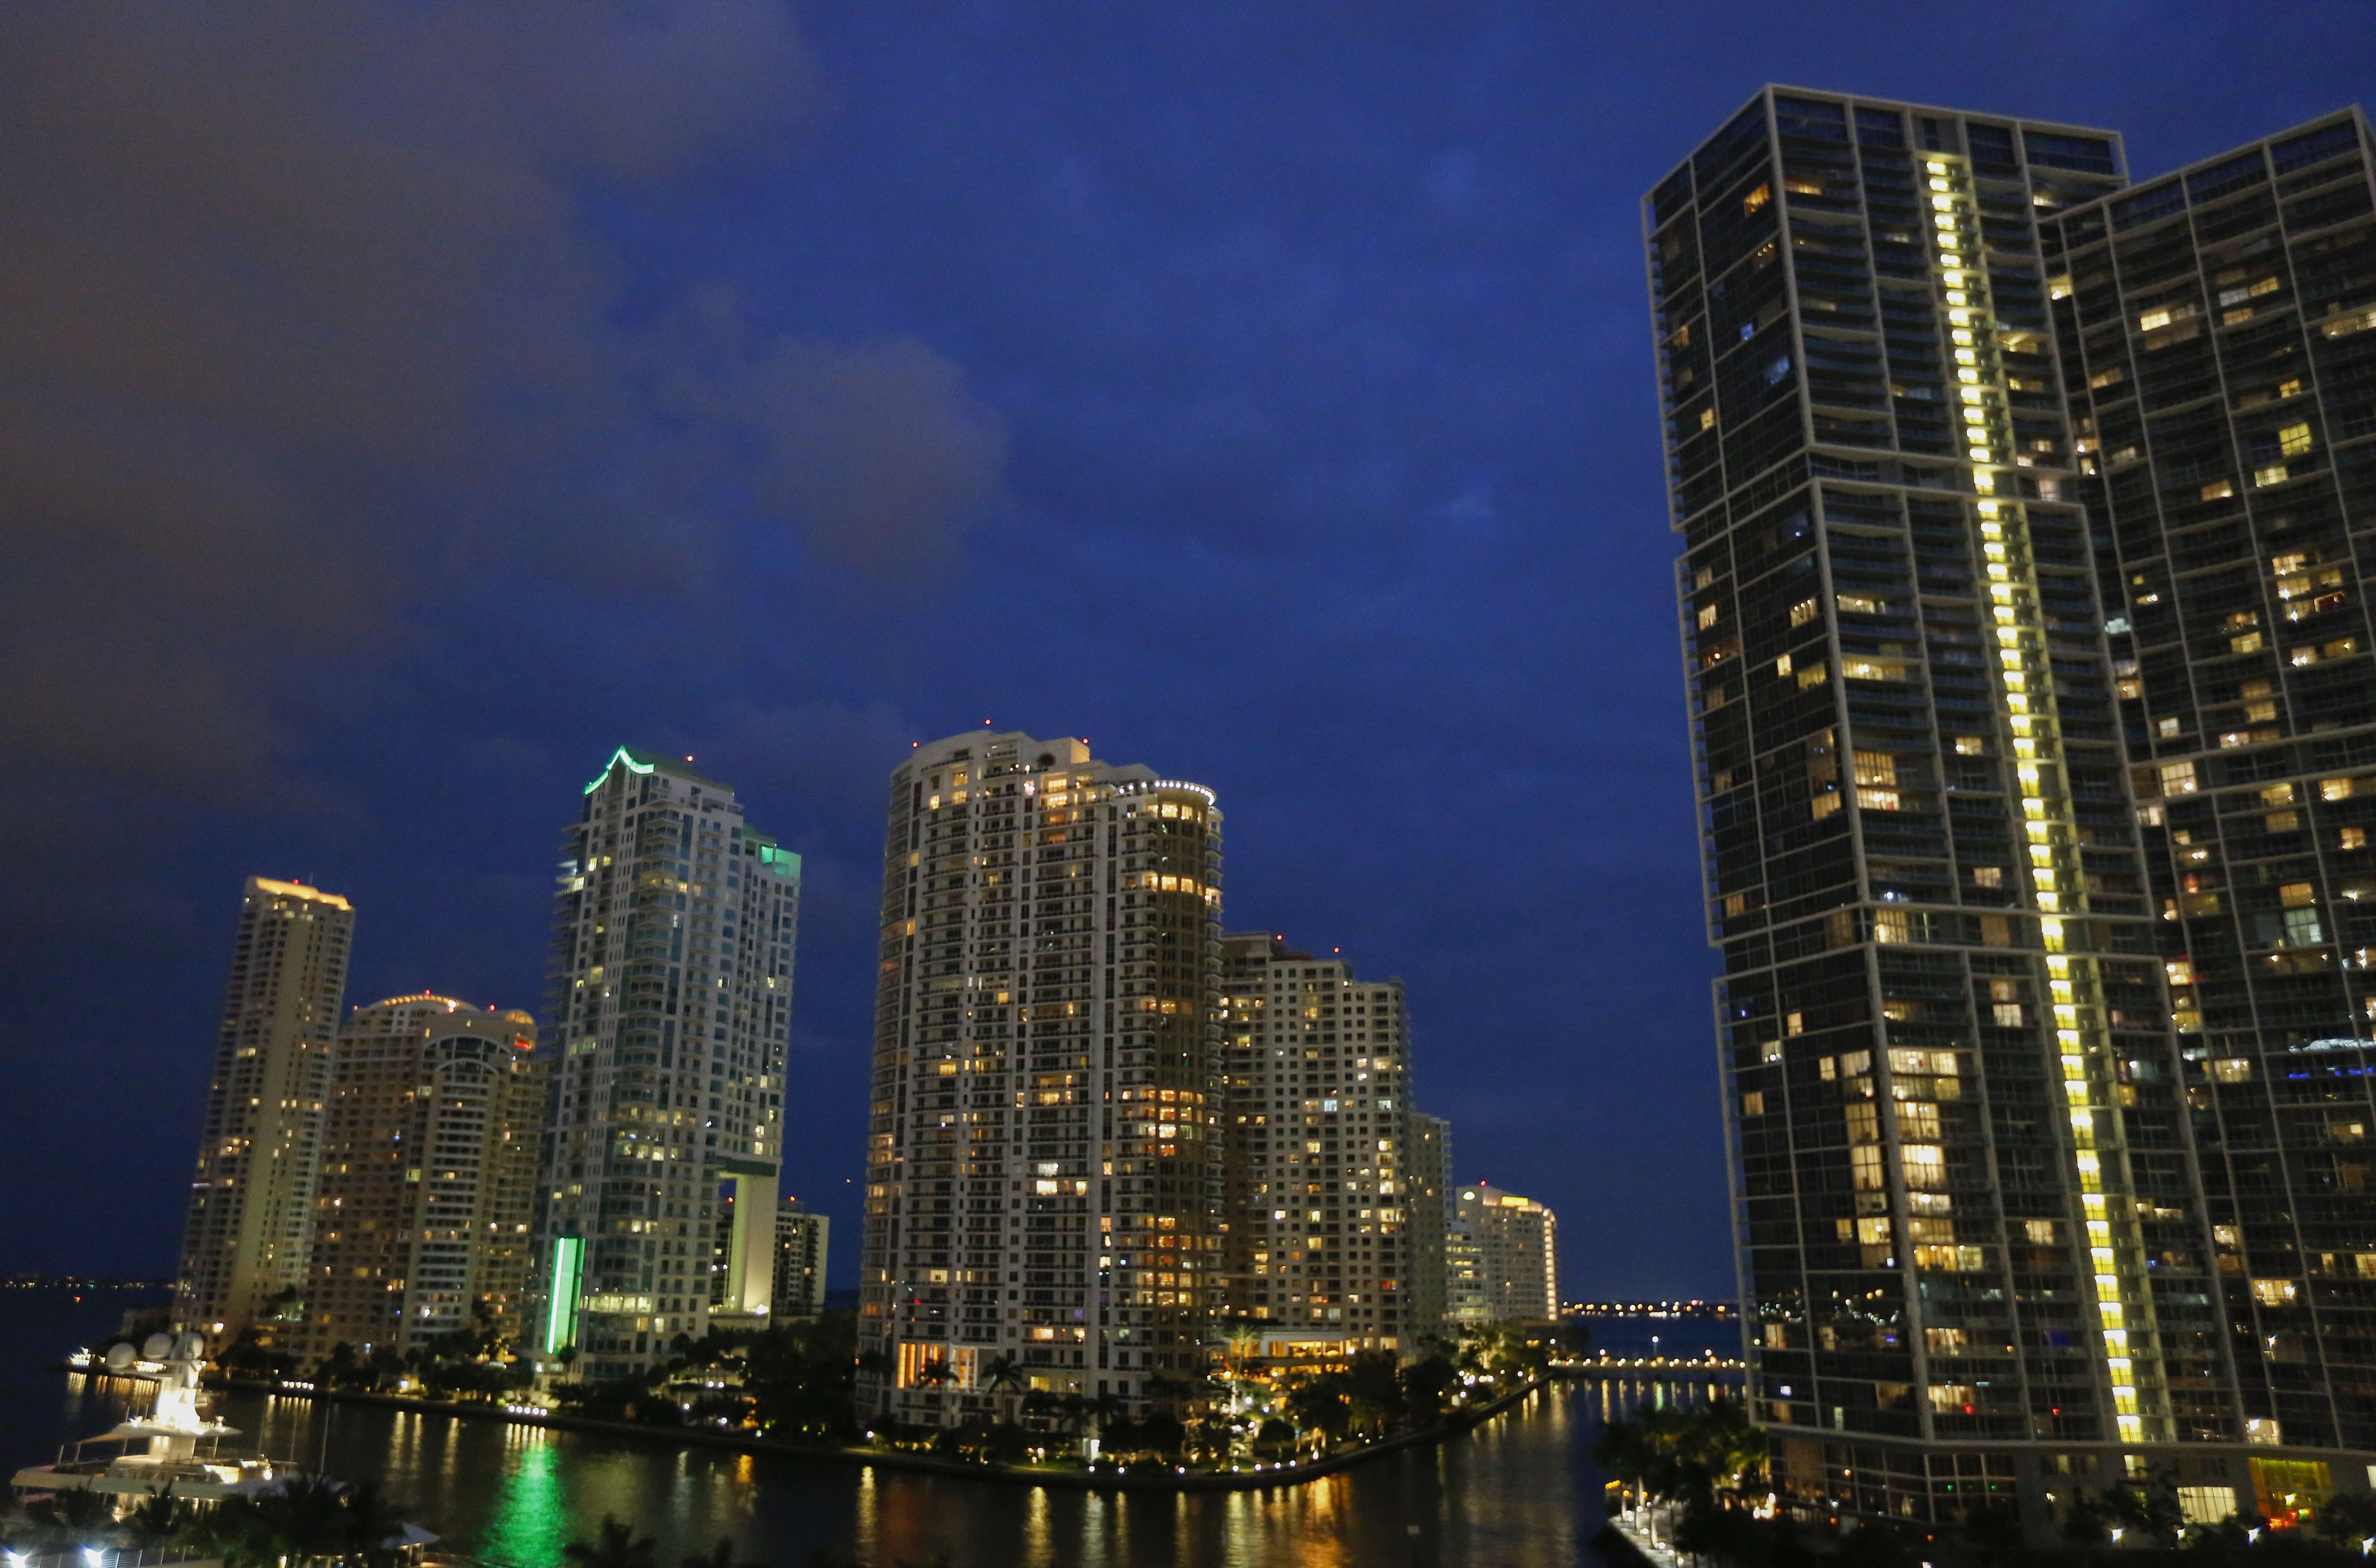 The Brickell Key Skyline is Seen at Dusk in Downtown Miami Florida Usa 23 March 2015 Brickell Key Also Known As Claughton Island is a Man-made Island Created with Developer Henry Flagler Dredged the Mouth of the Miami River in 1896 United States MiamiUsa Miami Weather - Mar 2015